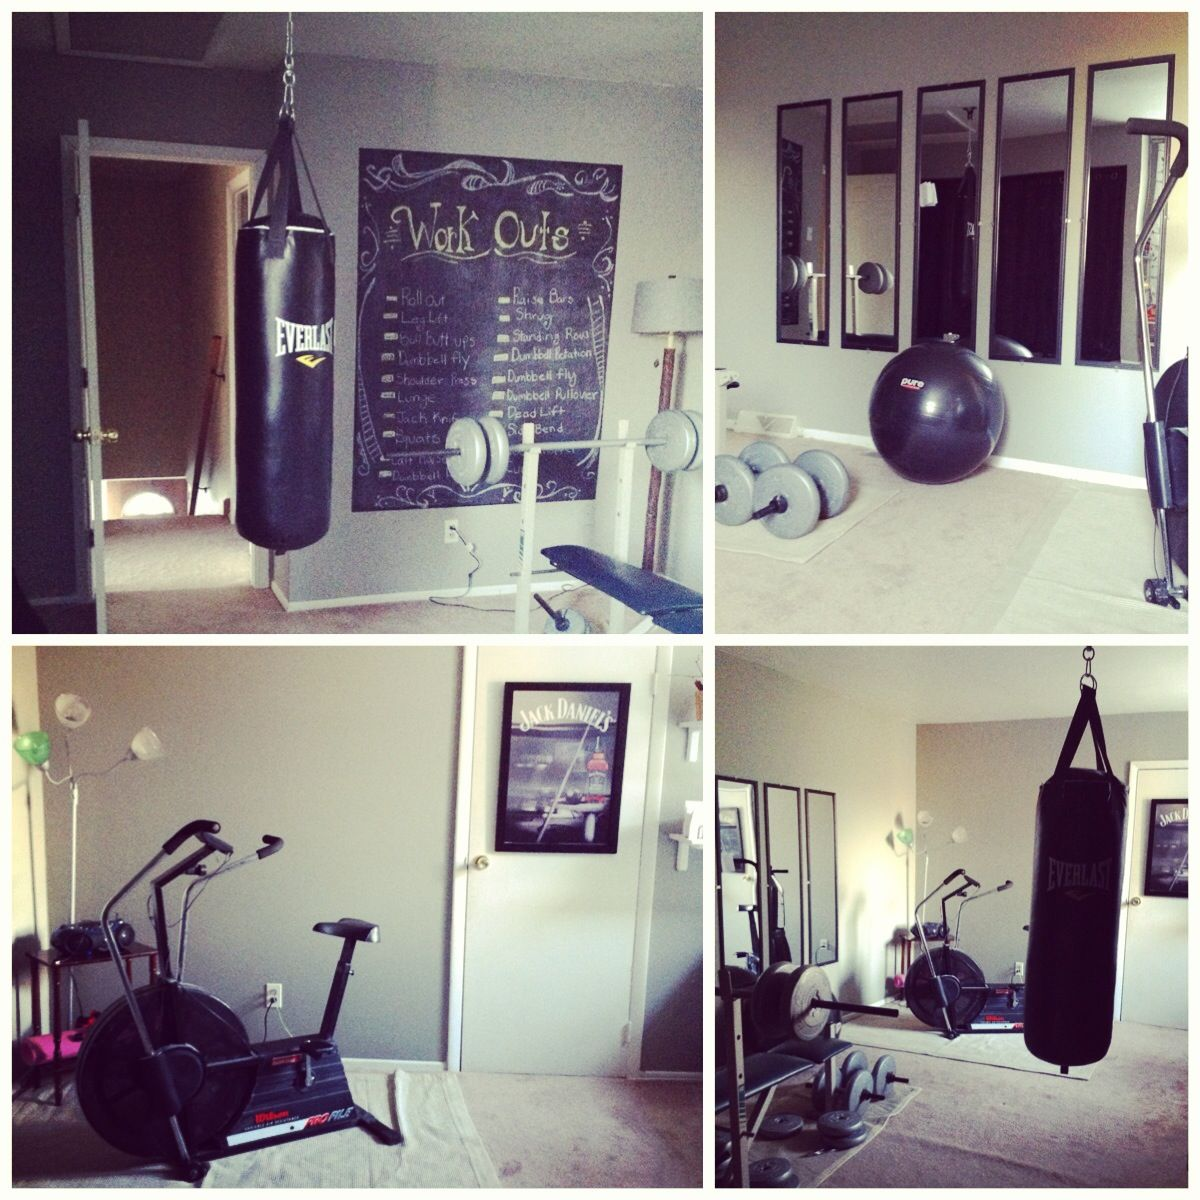 Home Gym Design Ideas: Pin By Chanel Stpierre On Home Stuff